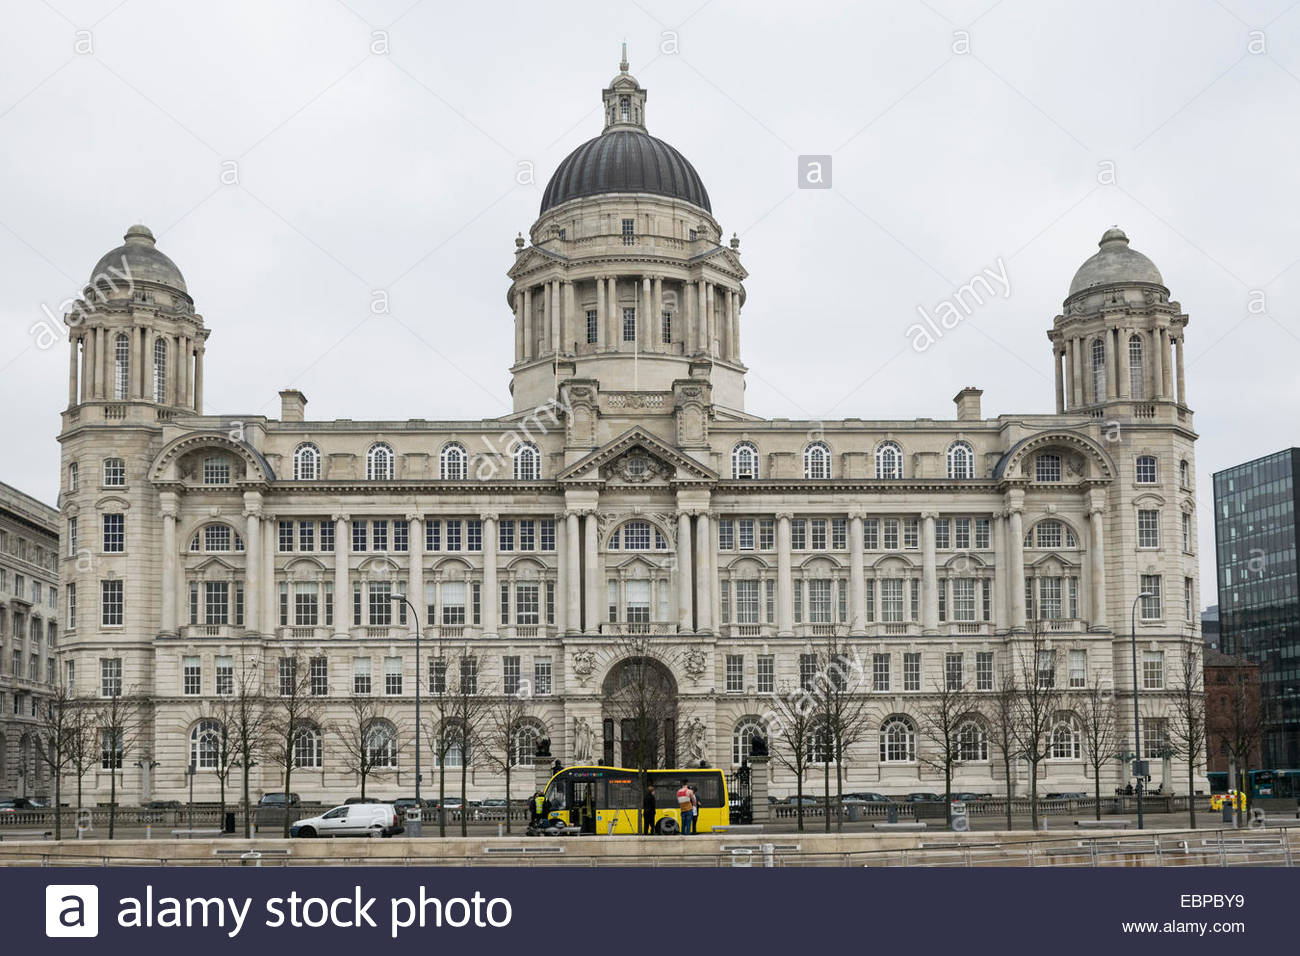 The Port of Liverpool Building by the River Mersey - Stock Image